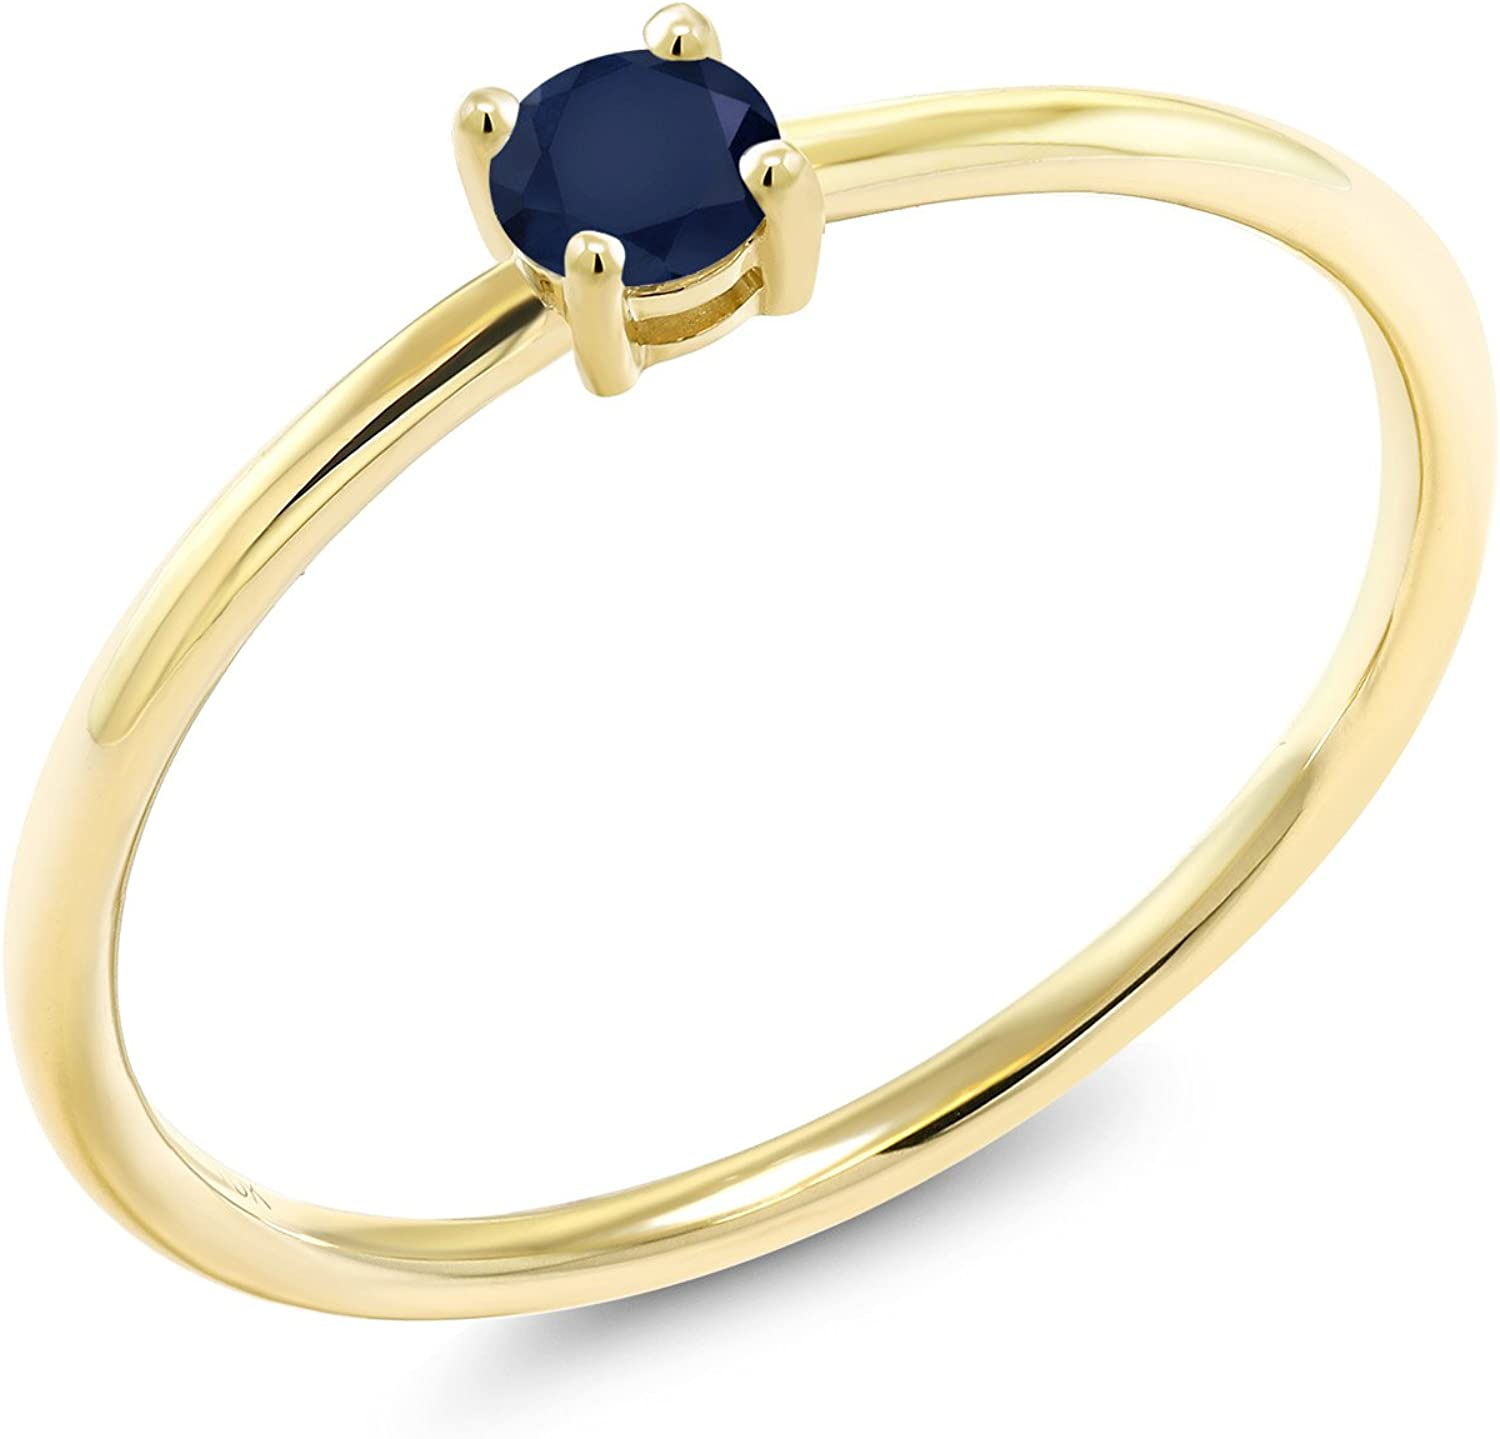 Gem Max 68% OFF Stone Limited time trial price King 10K Yellow Gold E Solitaire Sapphire Women's Blue